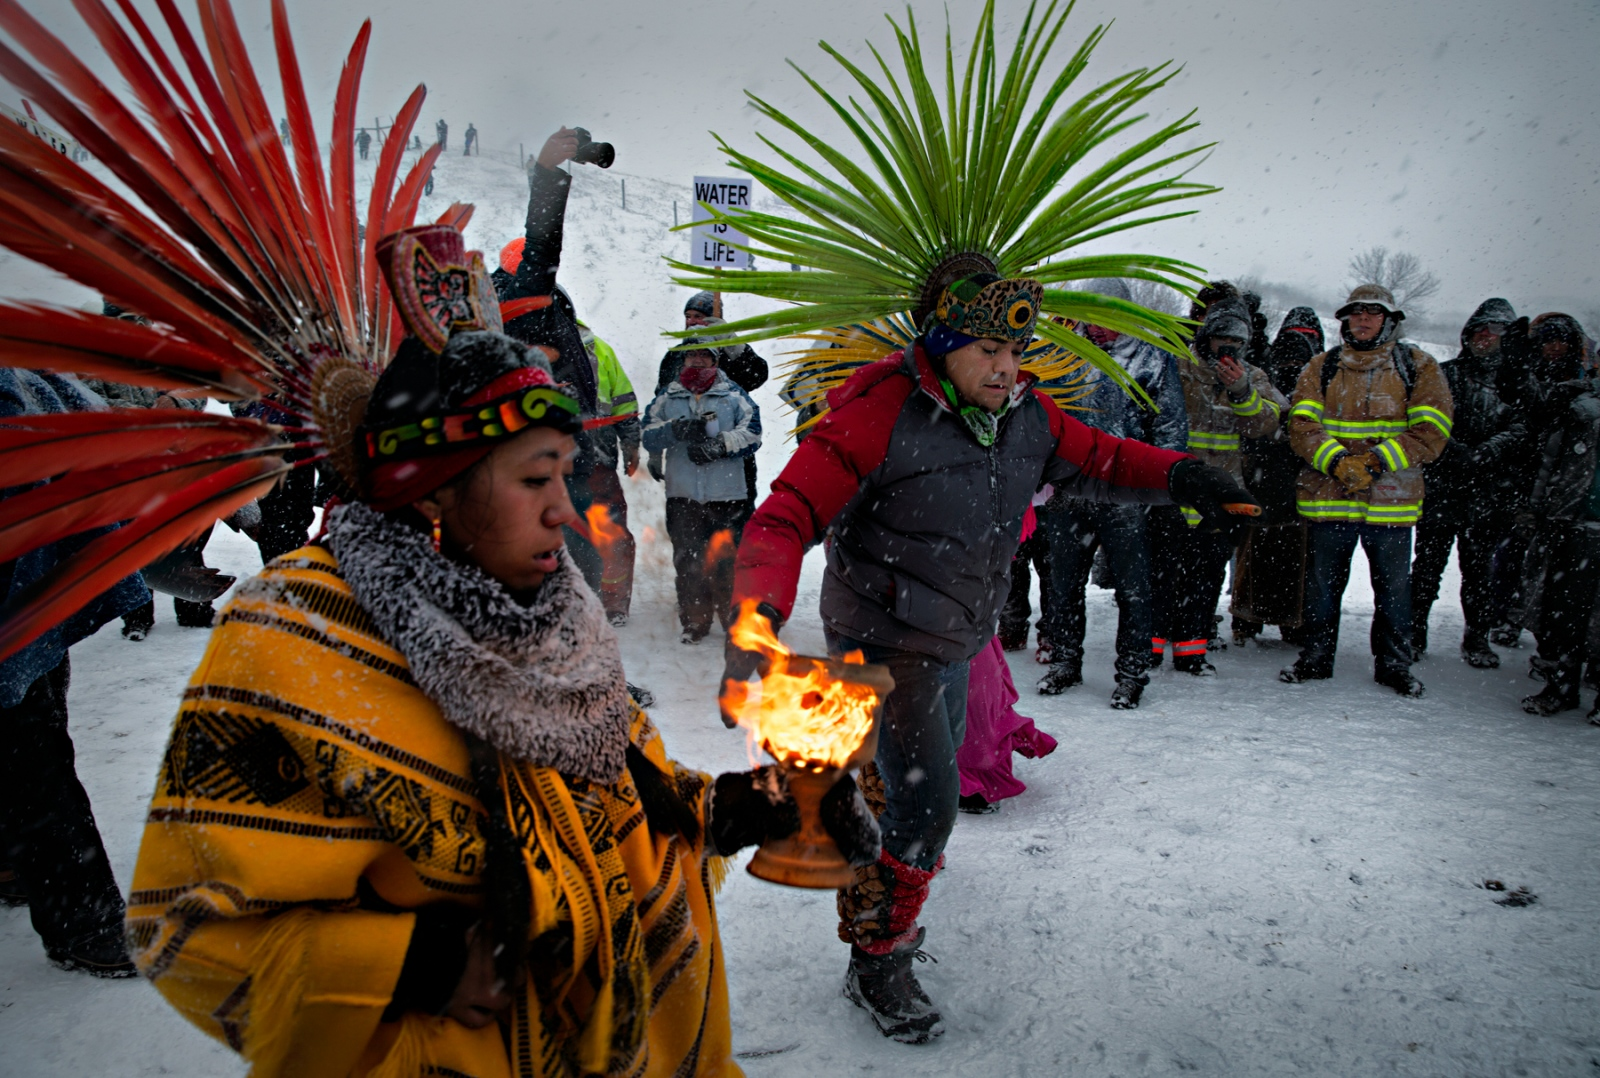 Aztec dancers accompanied the Veterans for Peace march  during a December blizzard near the Oceti Sakowin camp.